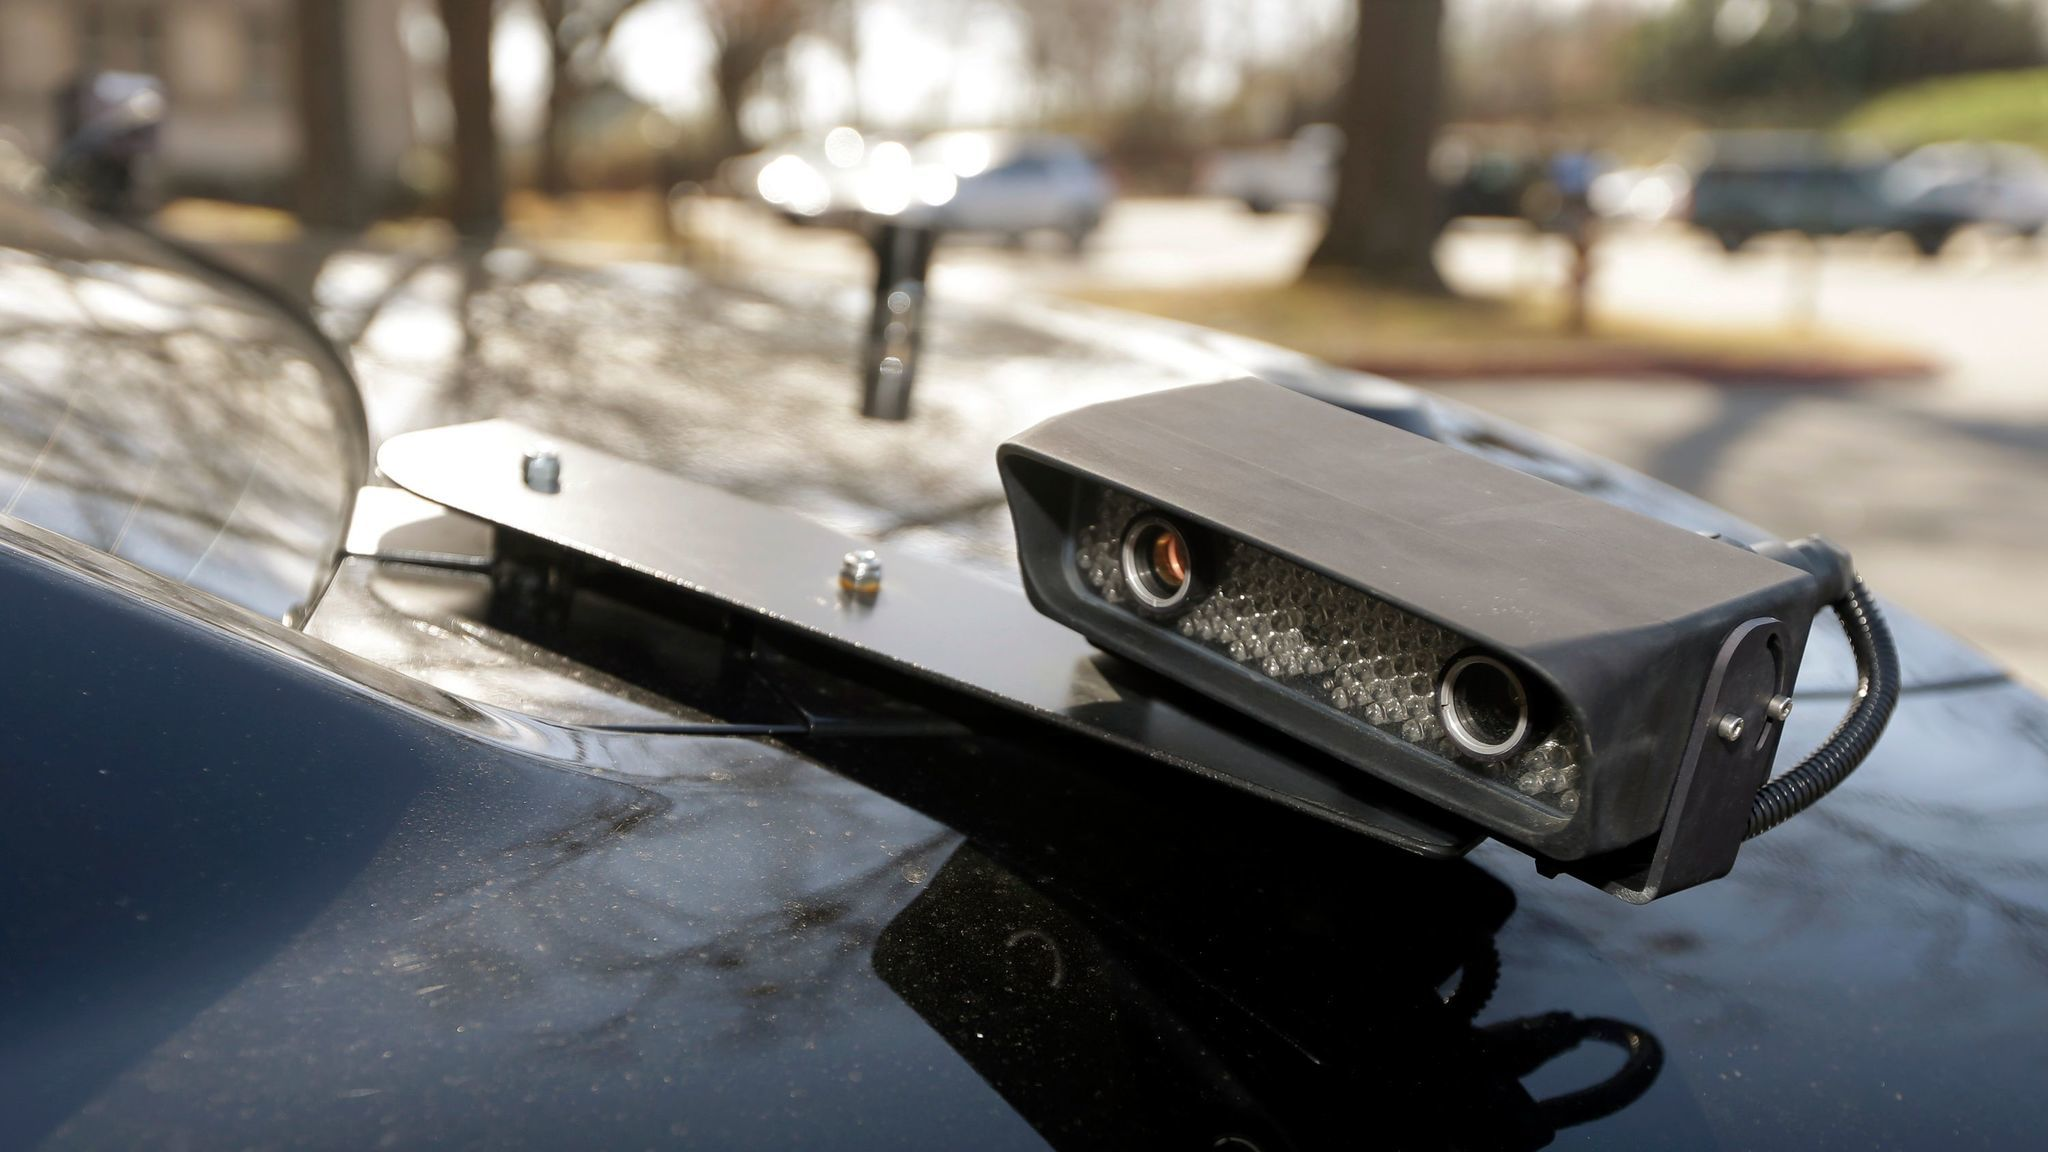 State high court rules license plate data are not secret police records